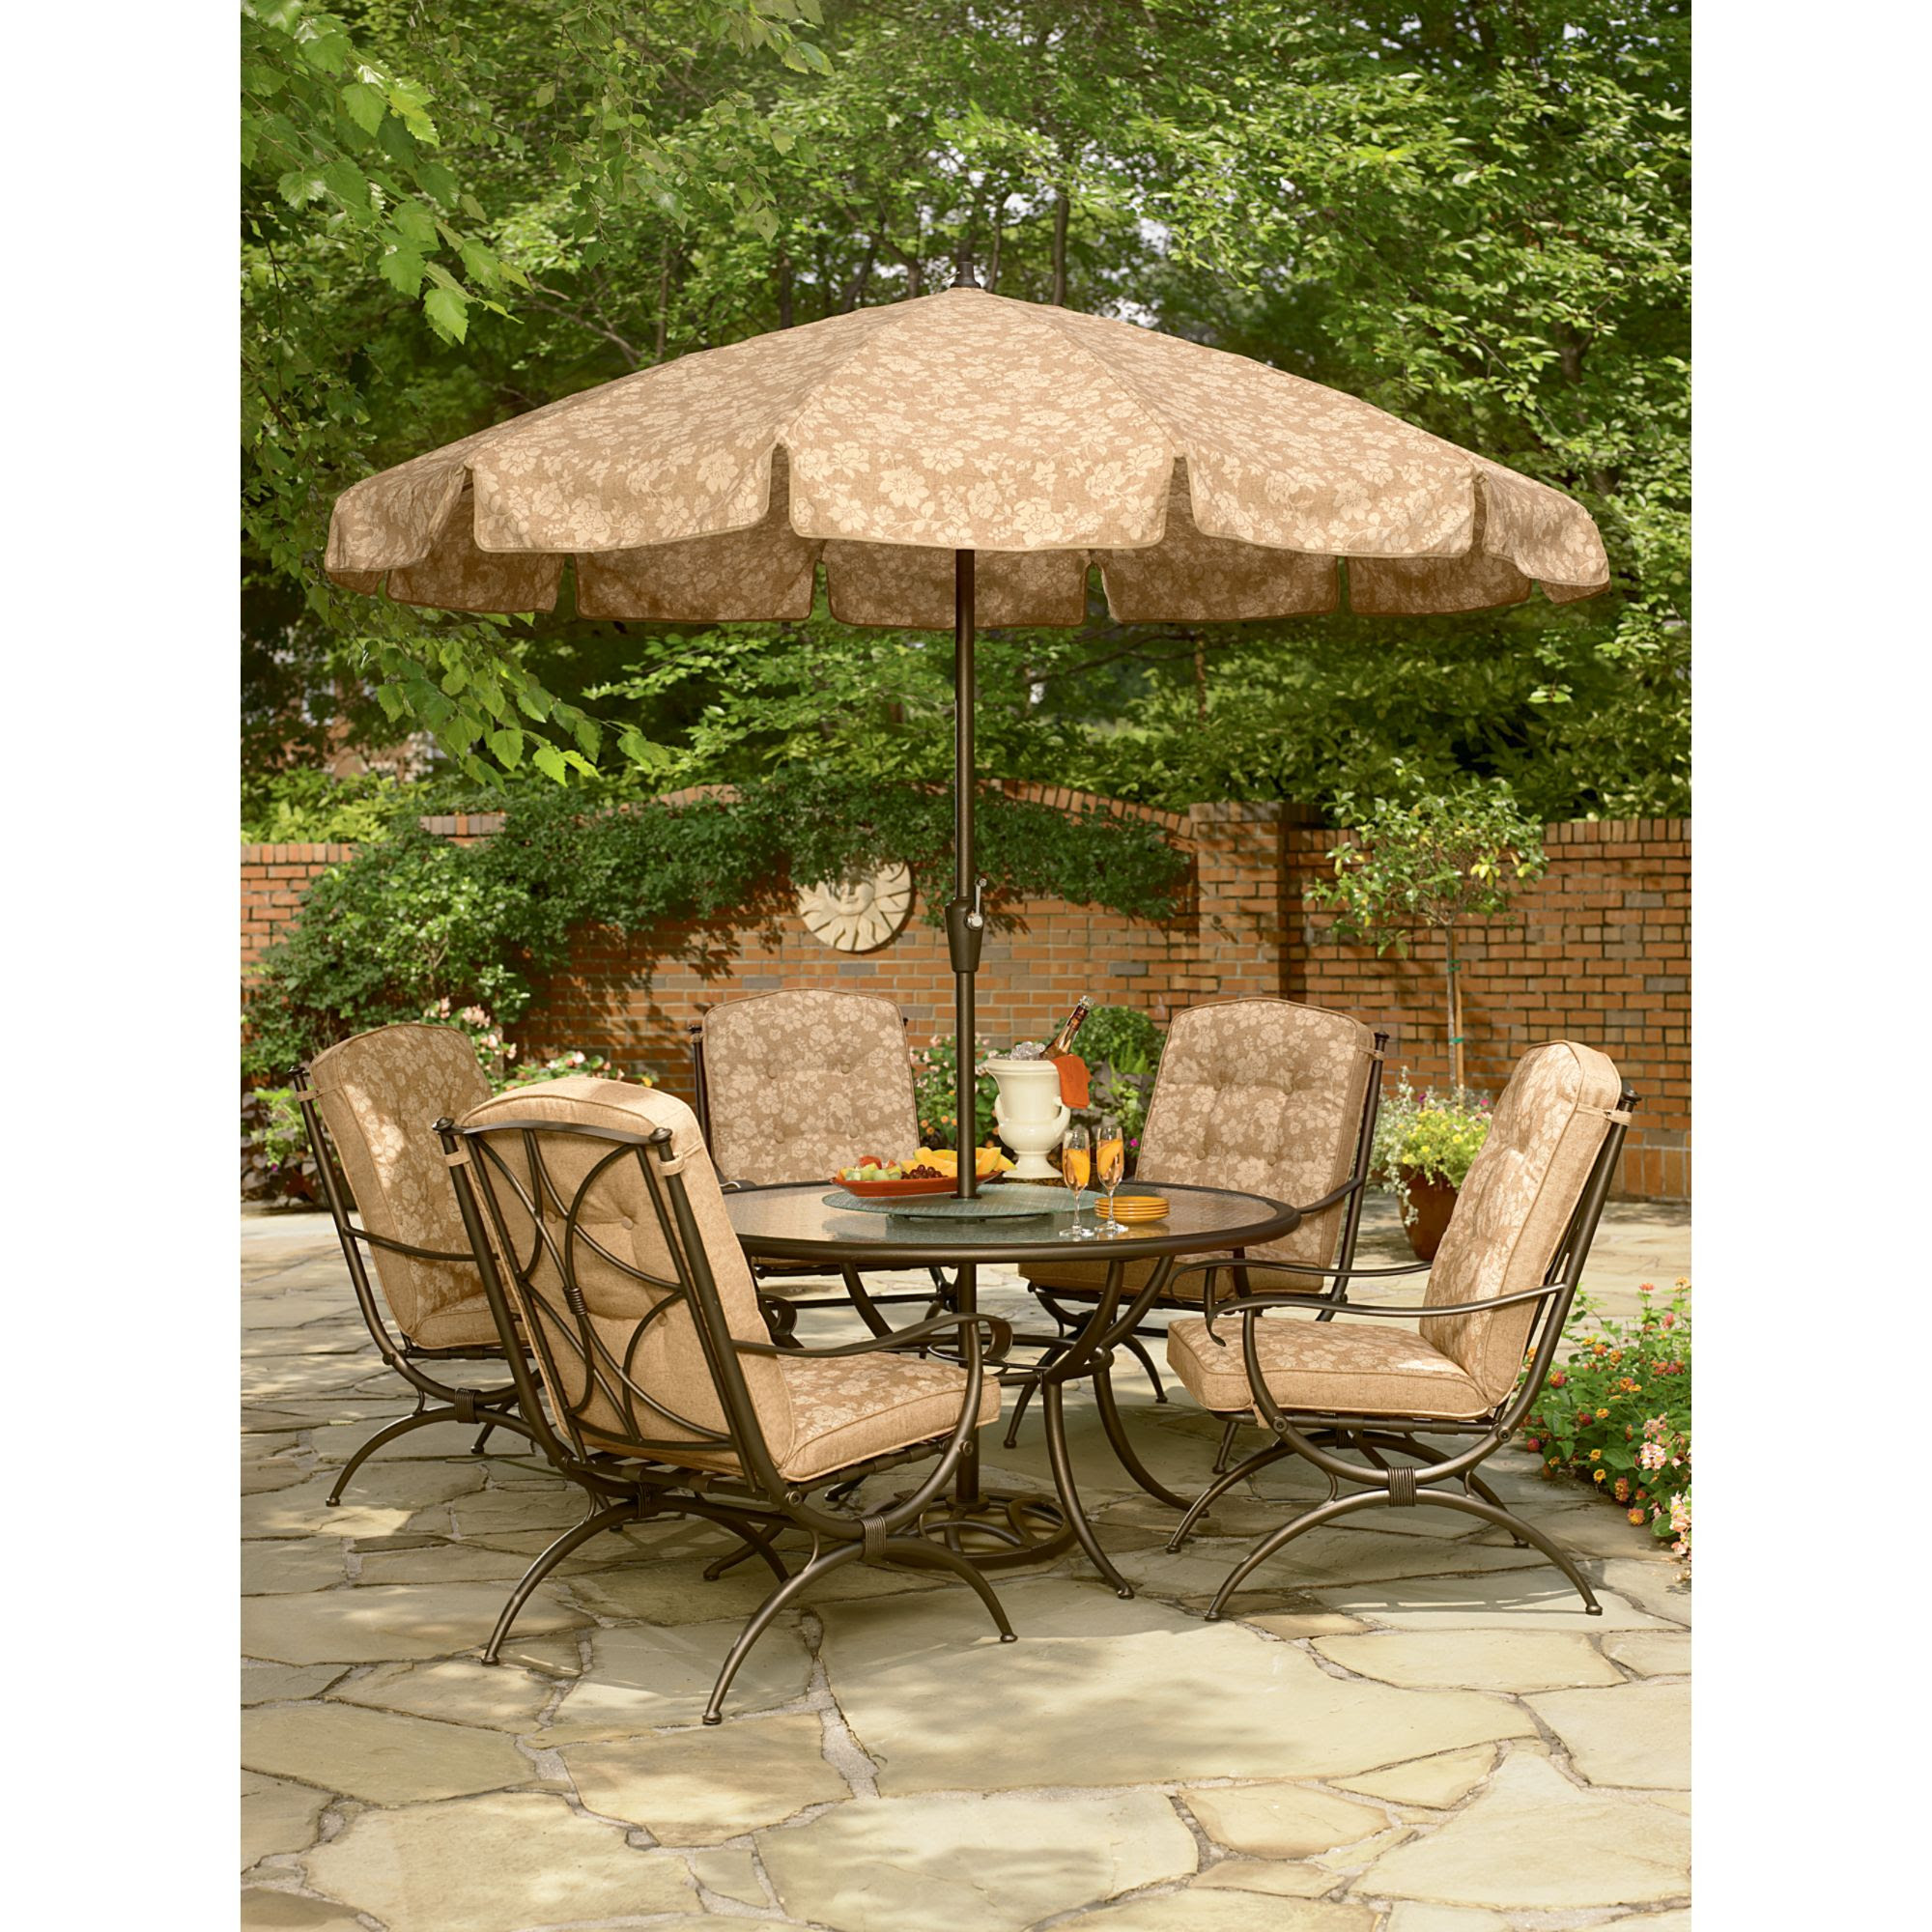 58 Kmart Patio Furniture Dining Sets